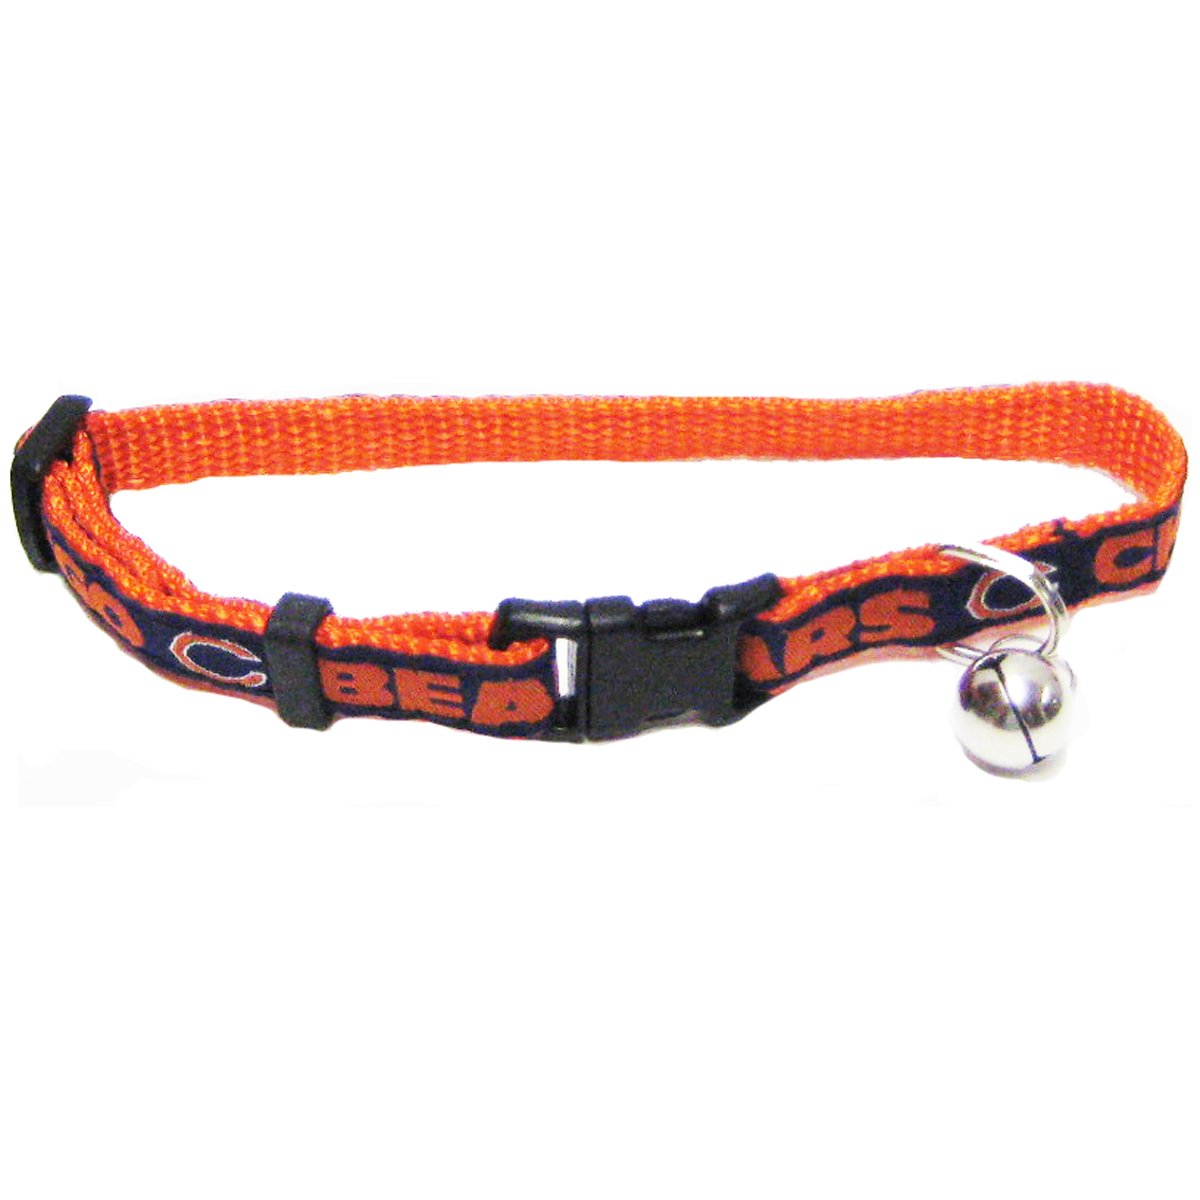 Amazon.com   Pets First NFL Chicago Bears Cat Collar - One adjustable size  fits most cats   Chicago Bears Gear   Pet Supplies ad1d932ed